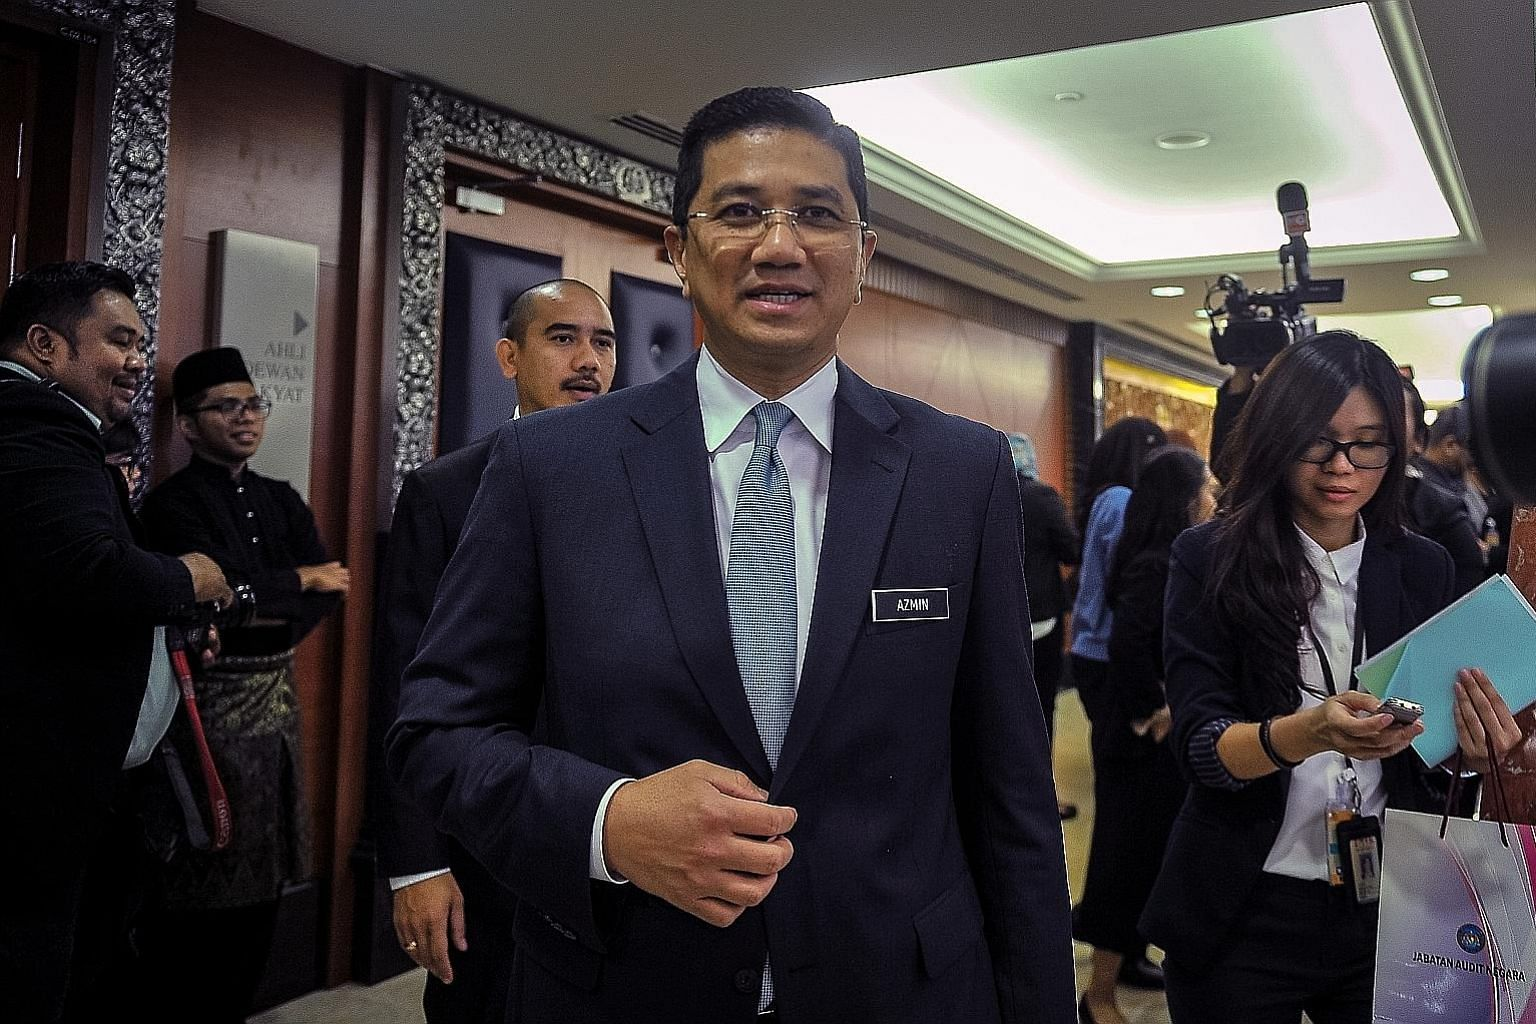 Economic Affairs Minister Mohamed Azmin Ali told reporters outside Malaysia's Parliament yesterday that he was in Singapore to visit Malaysian Home Minister Muhyiddin Yassin but also took the opportunity to meet some senior officials.